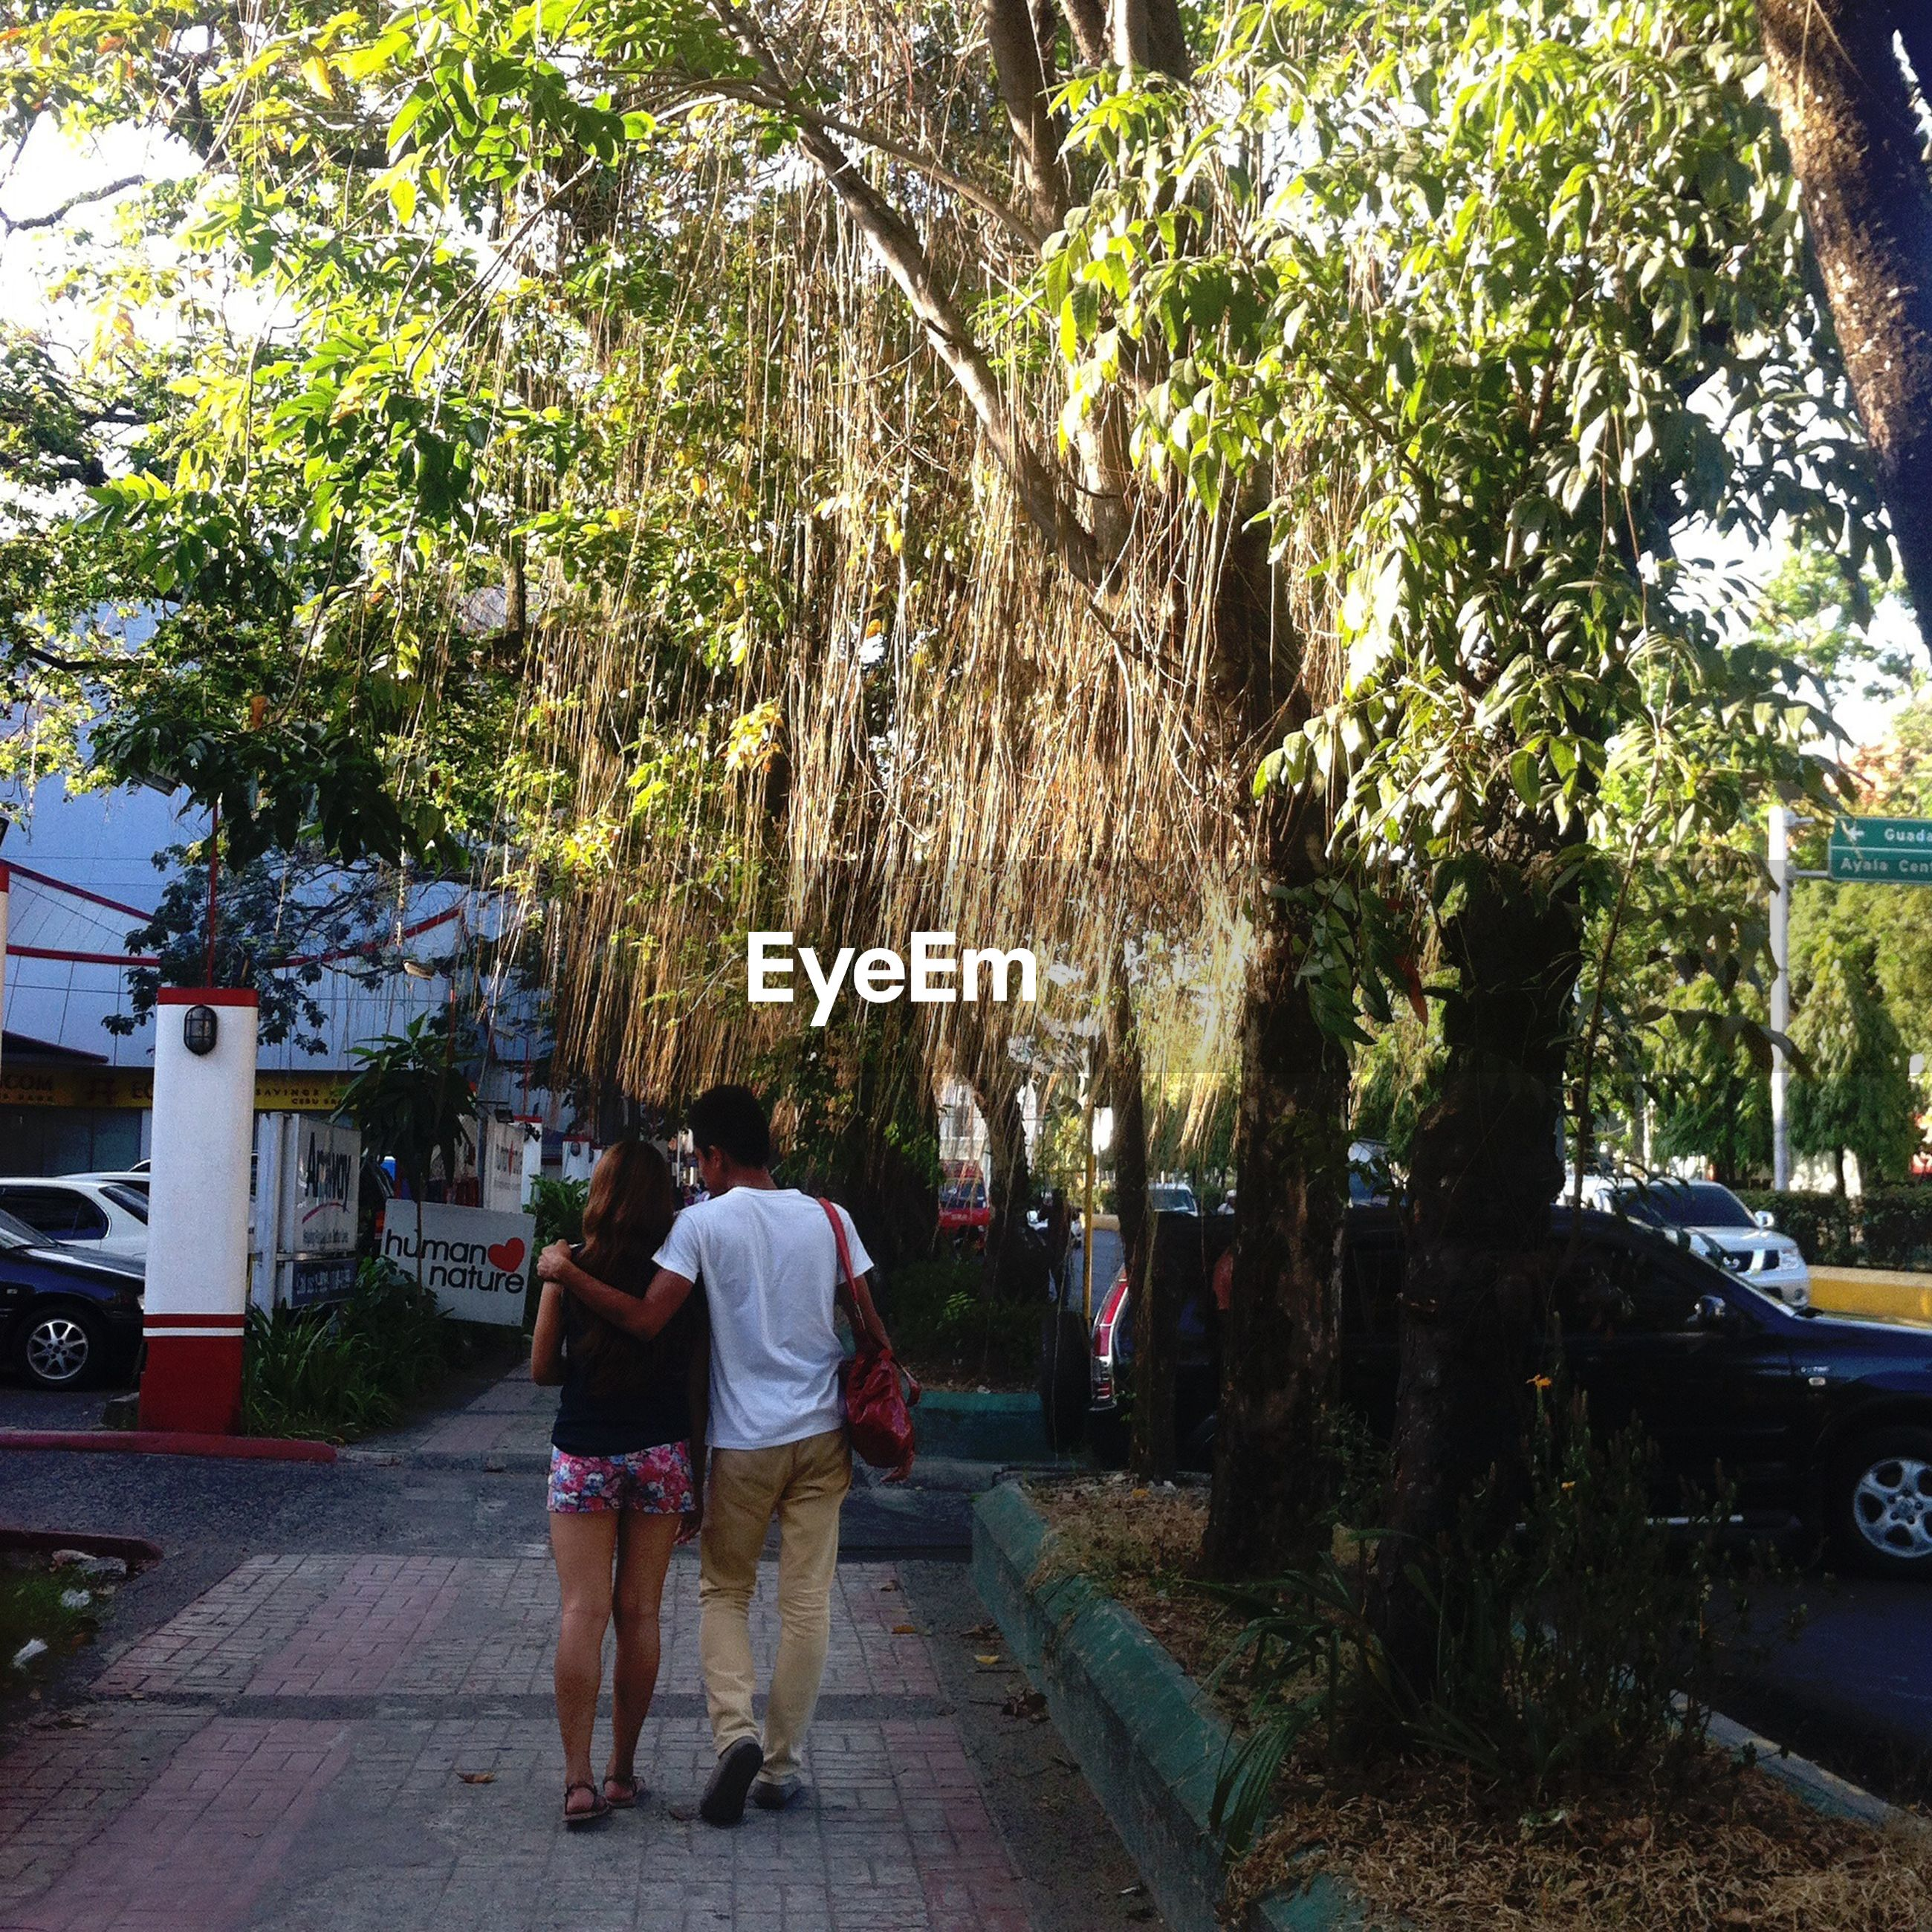 tree, rear view, men, lifestyles, walking, person, full length, street, transportation, the way forward, leisure activity, footpath, road, sidewalk, city life, togetherness, casual clothing